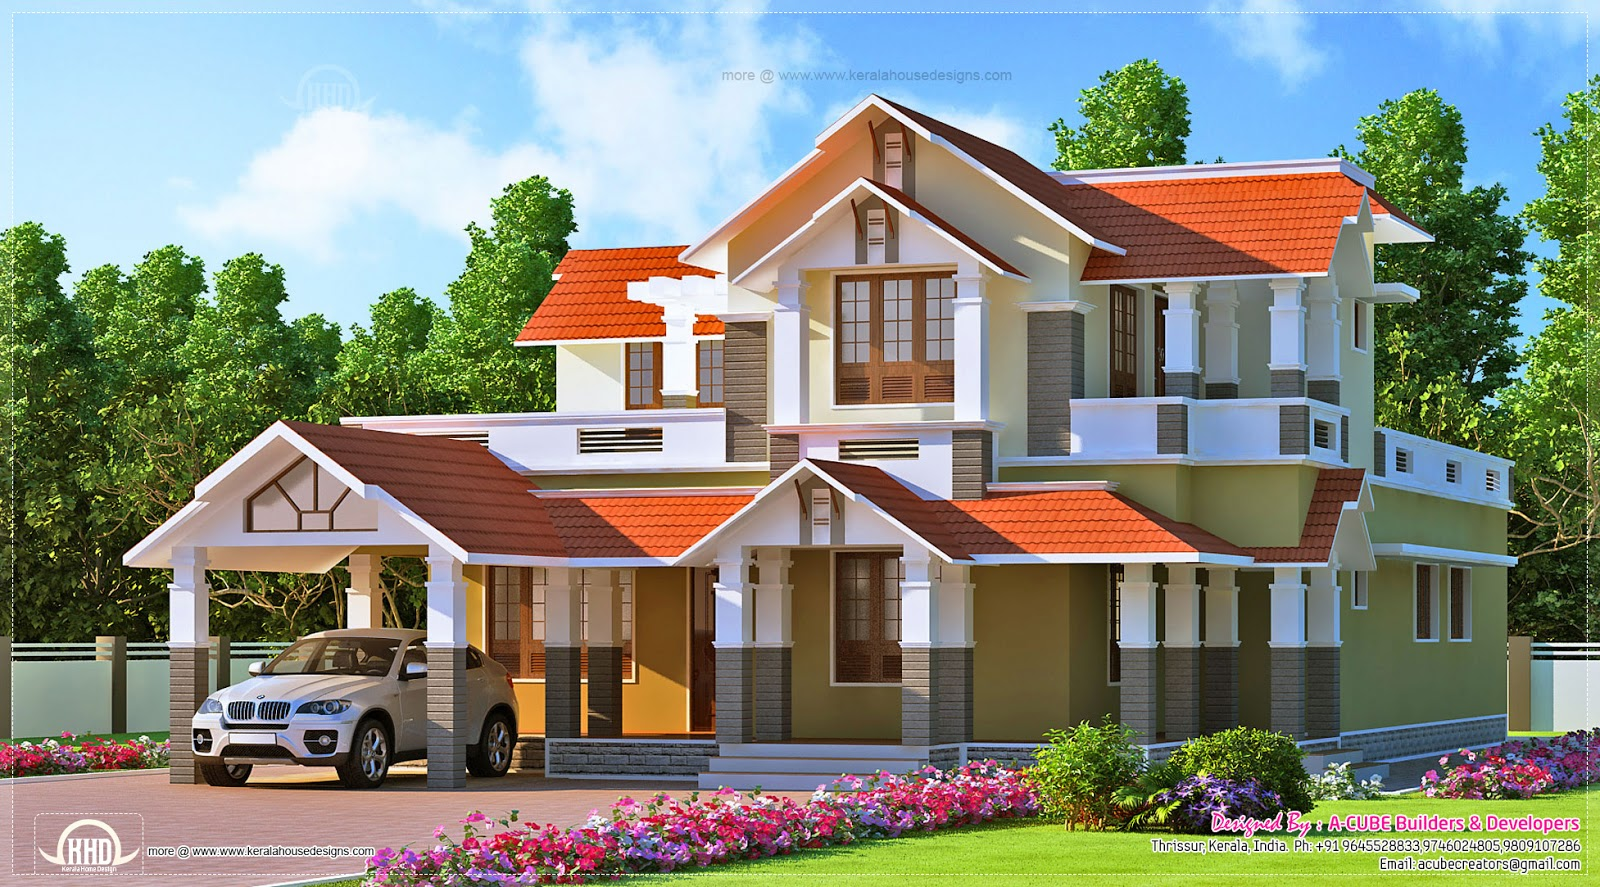 Kerala style dream home design in 2900 house design plans Dream house builder